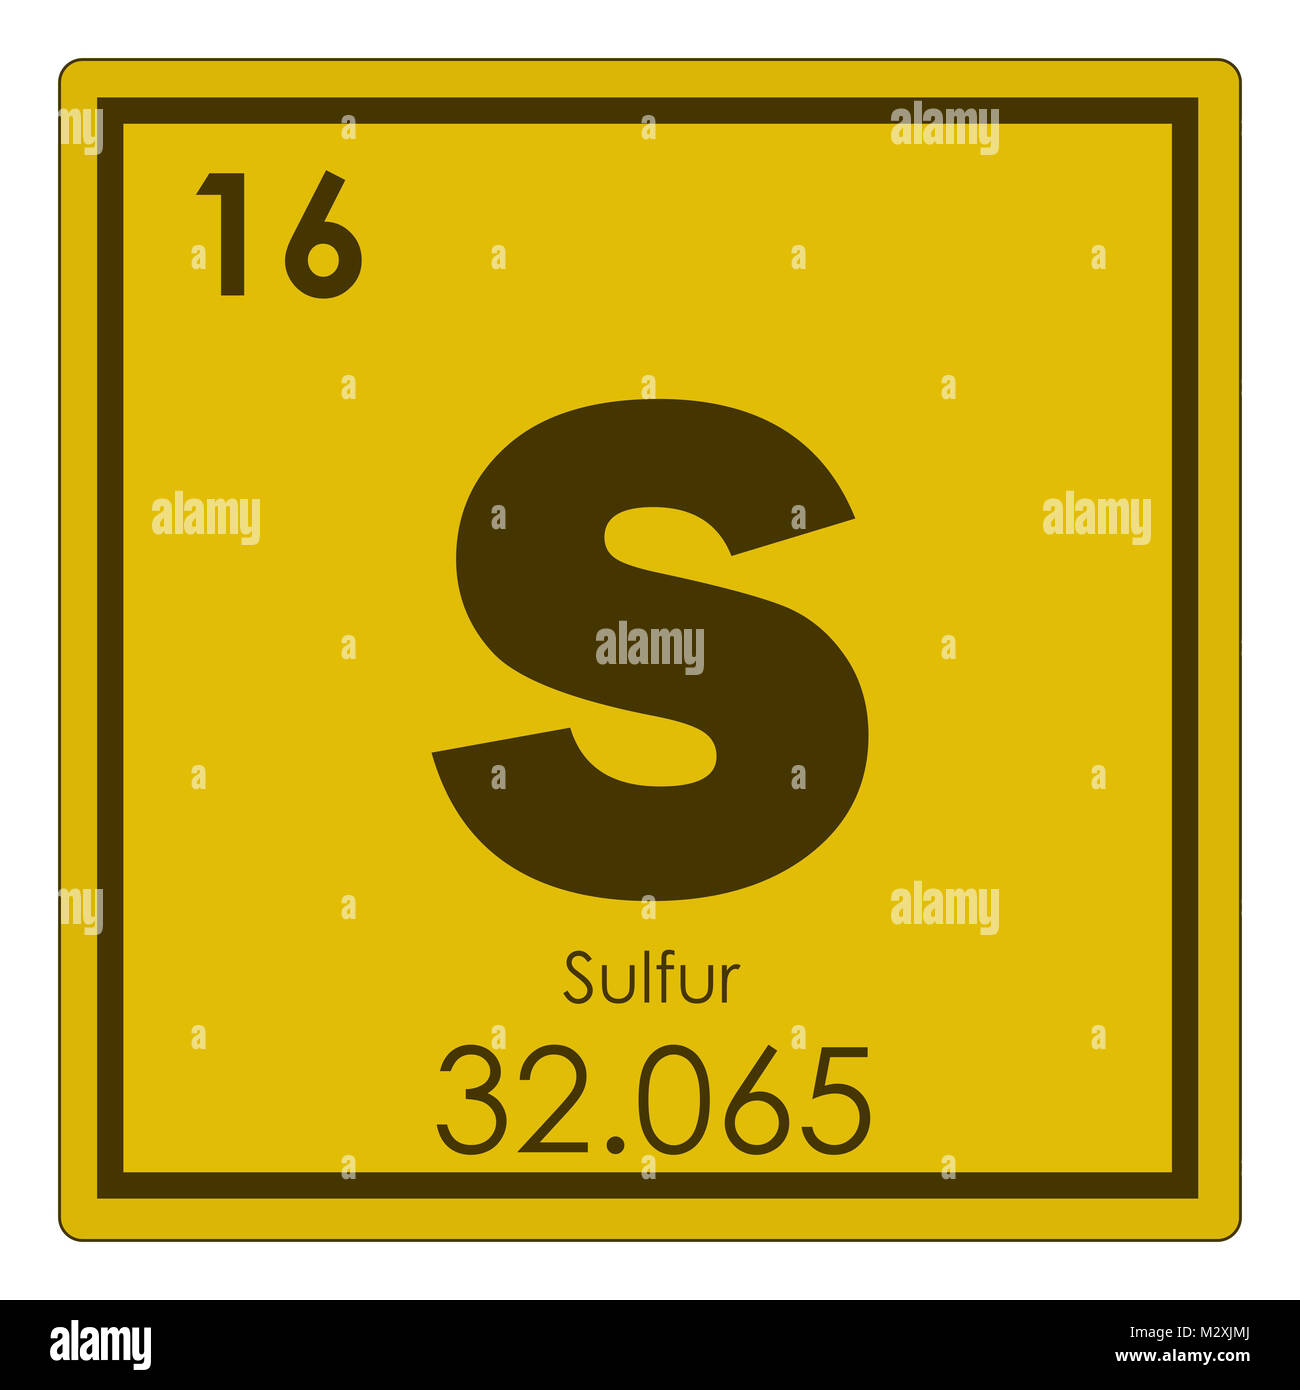 Sulfur Chemical Element Periodic Table Science Symbol Stock Photo